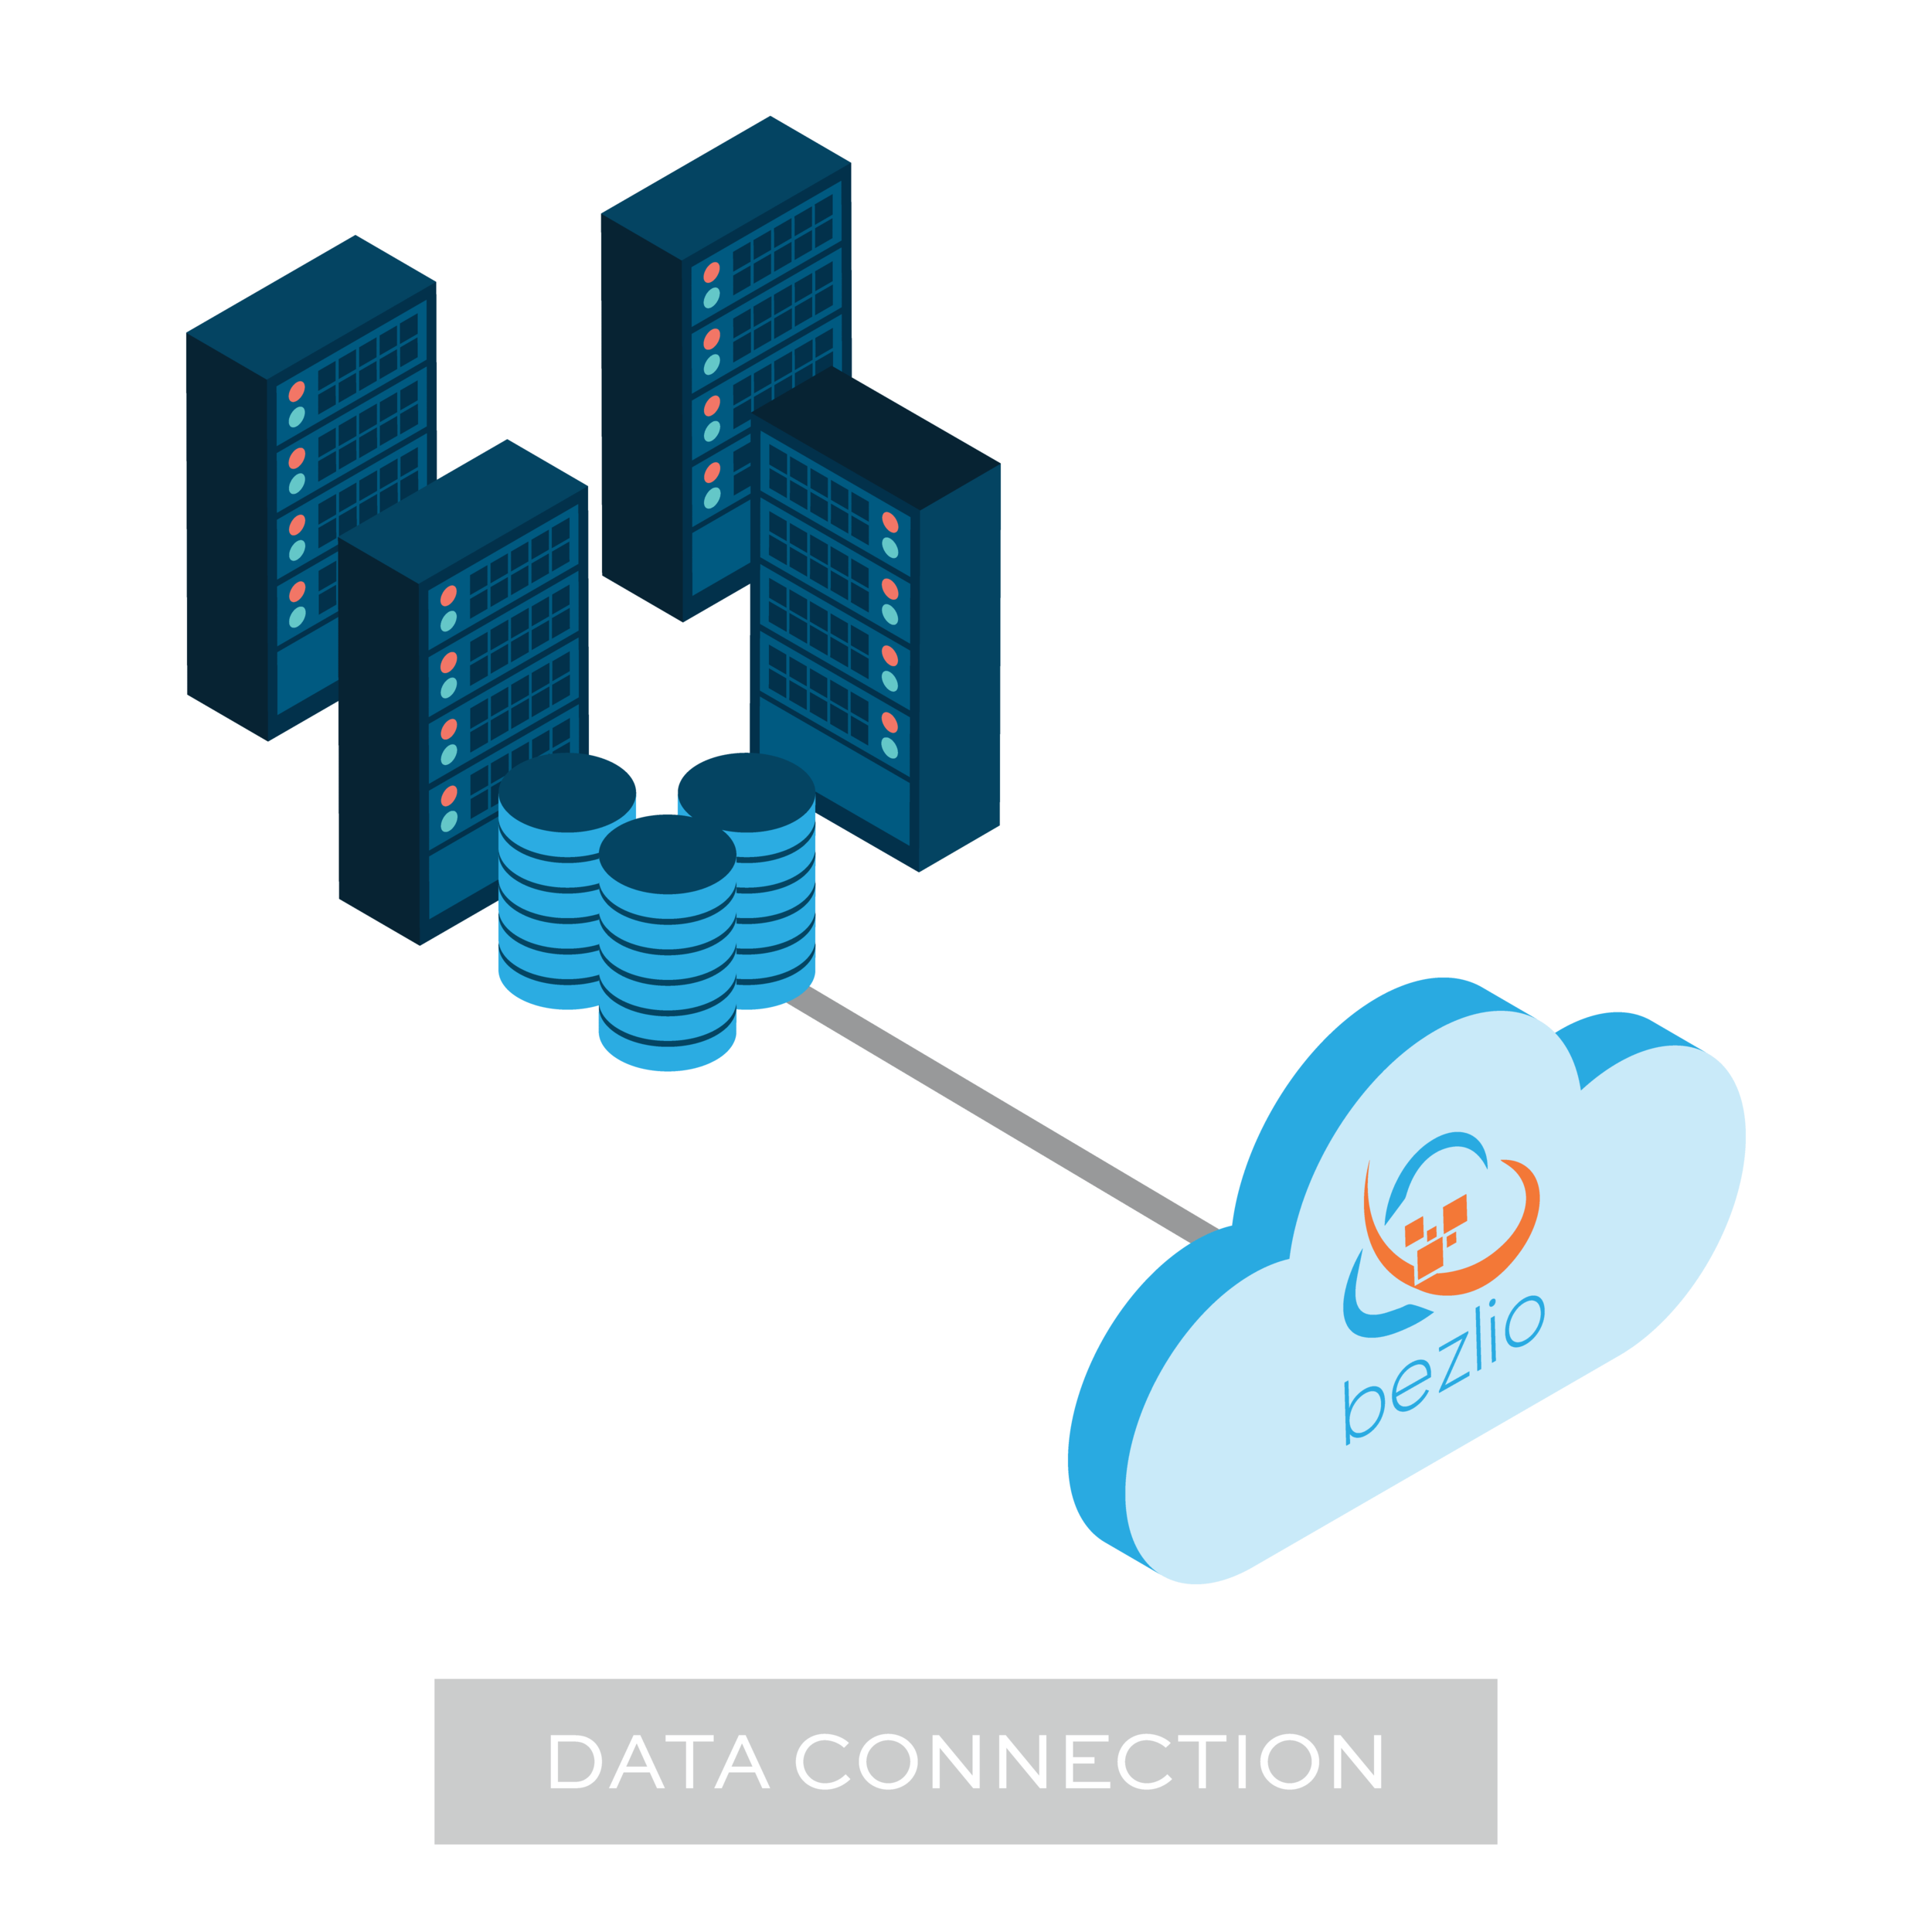 Illustration of Bezlio and source on-premises database/servers, representing the getting started step of setting up your data connections.